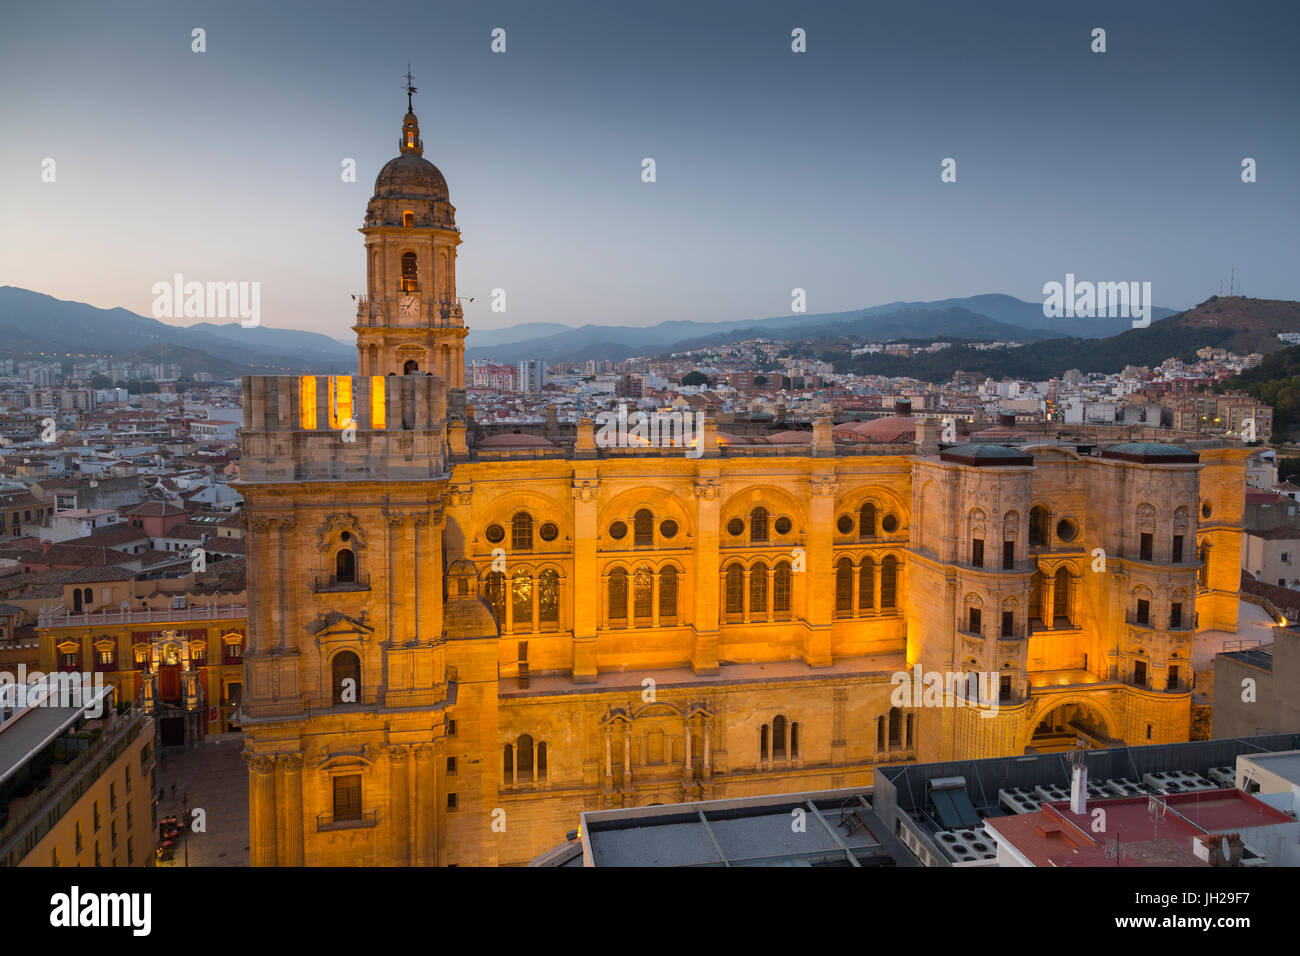 Elevated view of Malaga Cathedral at dusk, Malaga, Costa del Sol, Andalusia, Spain, Europe - Stock Image